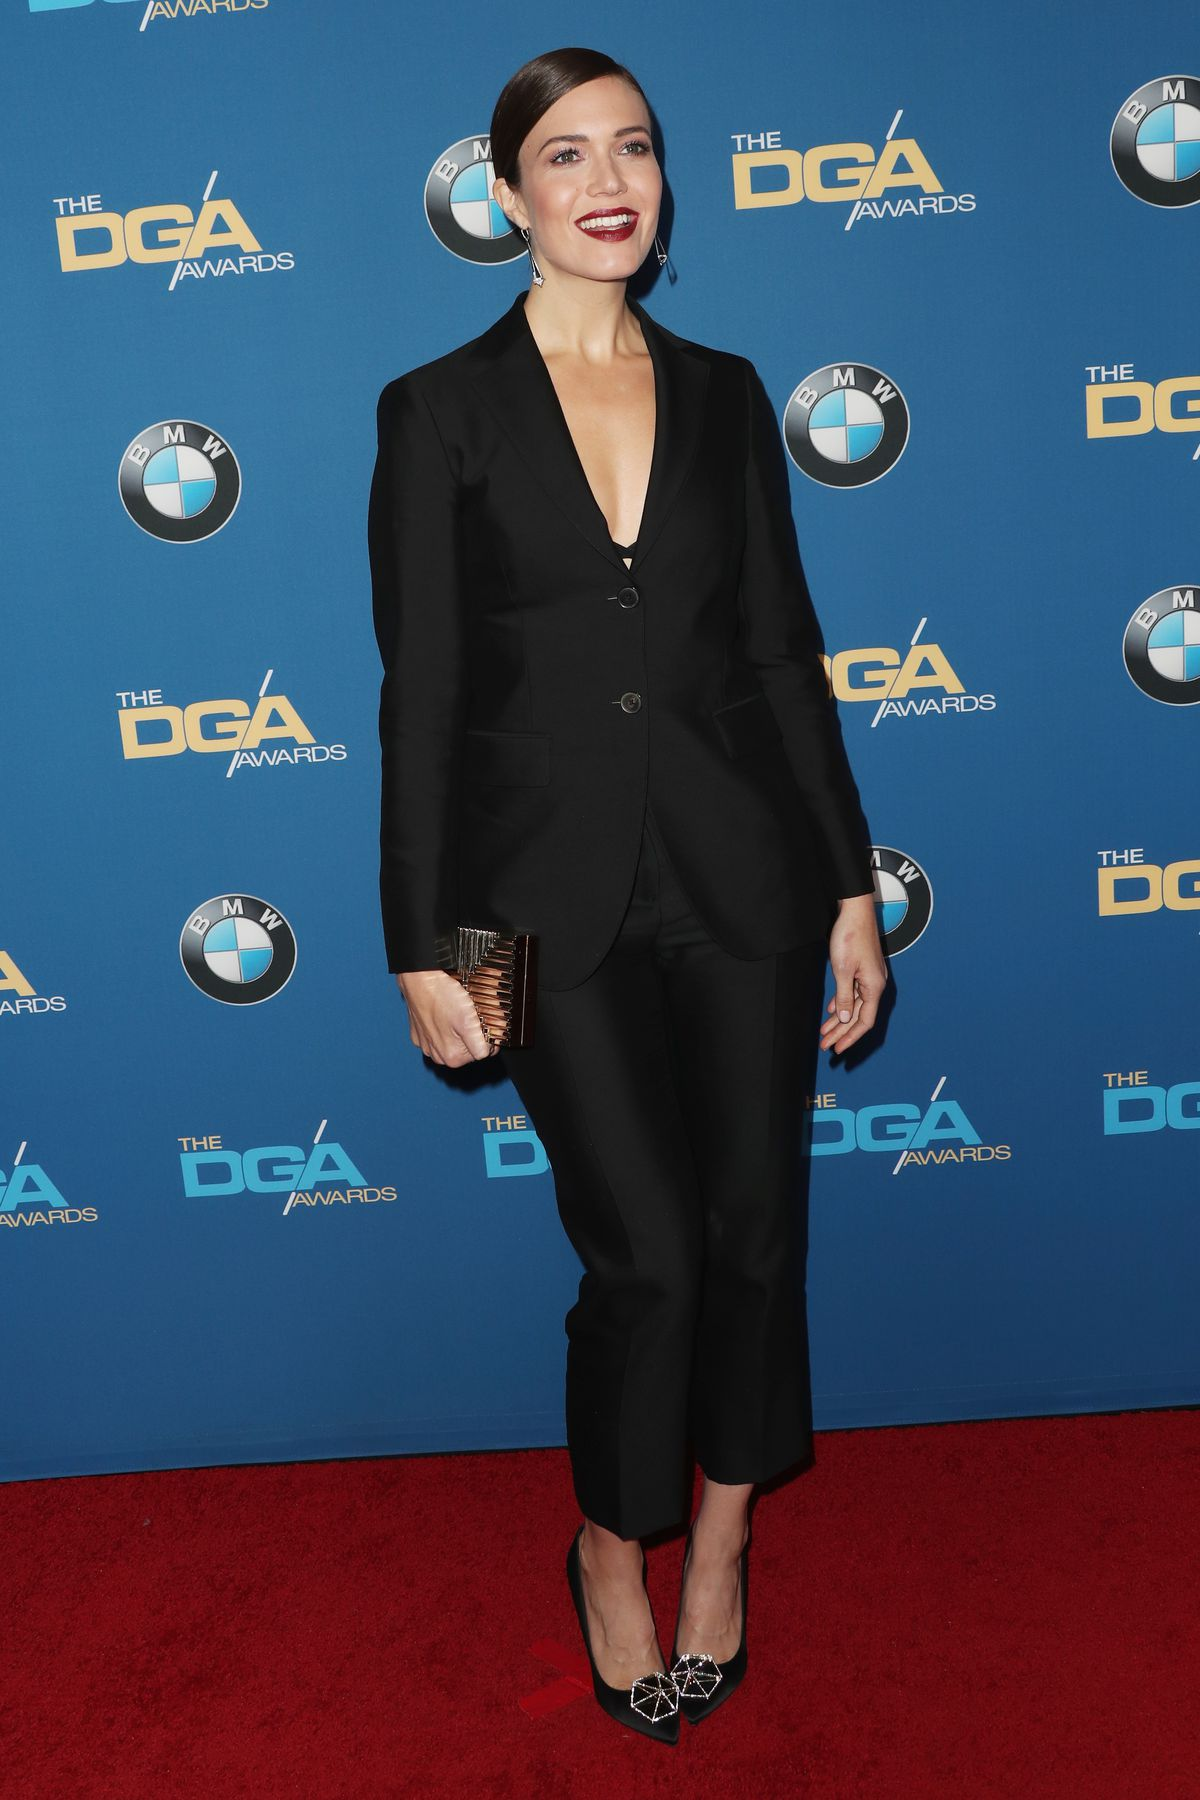 Actress Mandy Moore attends the 69th Annual Directors Guild of America Awards at The Beverly Hilton Hotel on February 4, 2017 in Beverly Hills, California.